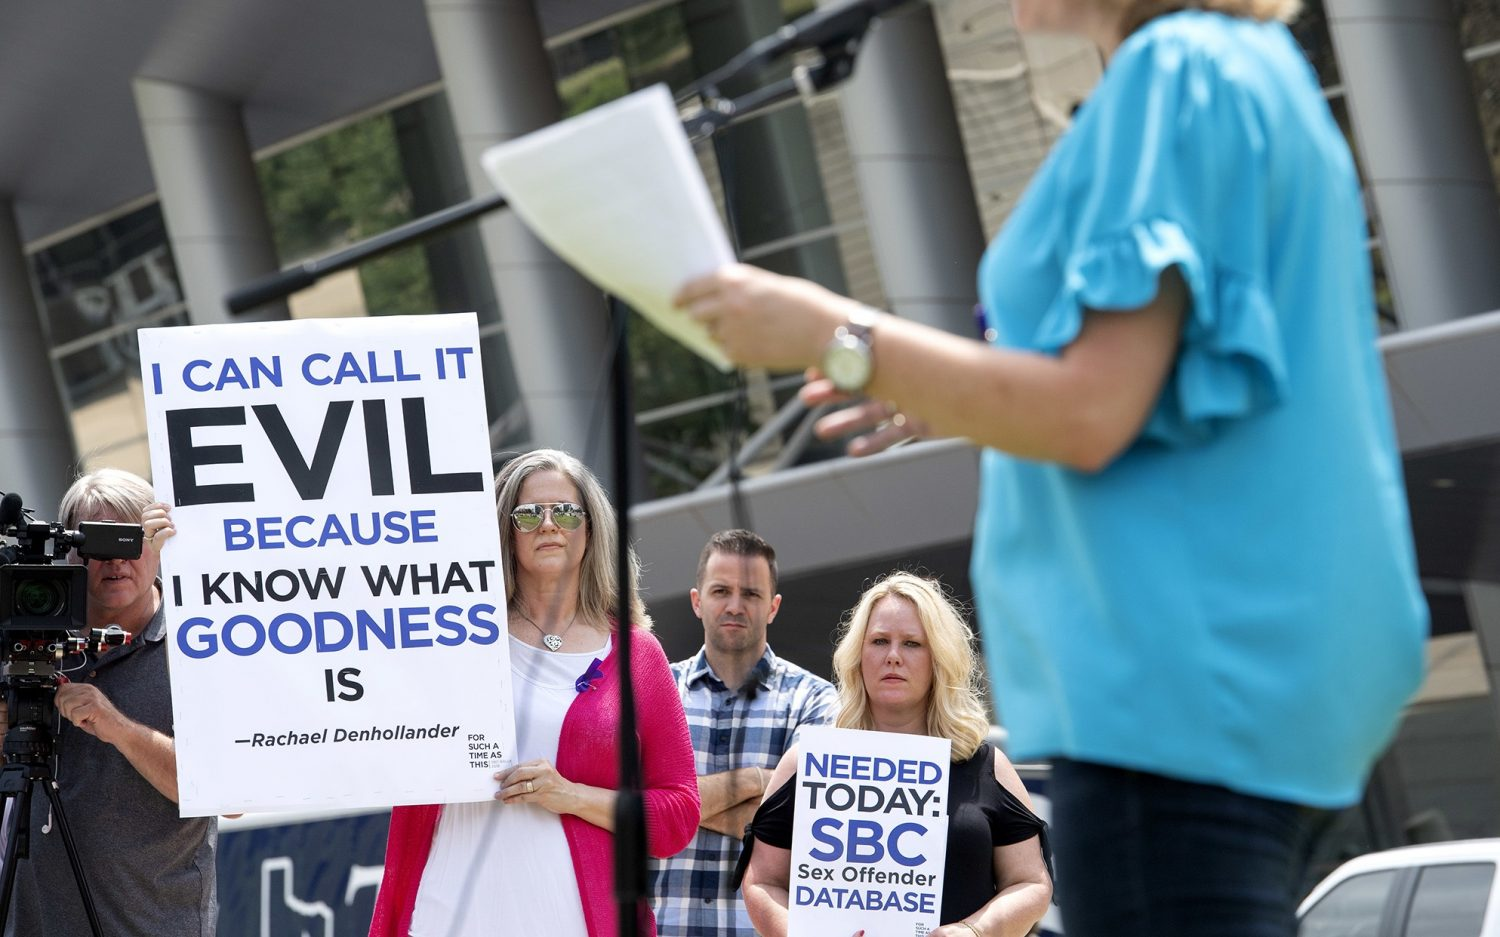 Investigation uncovers sexual abuse in Southern Baptist churches